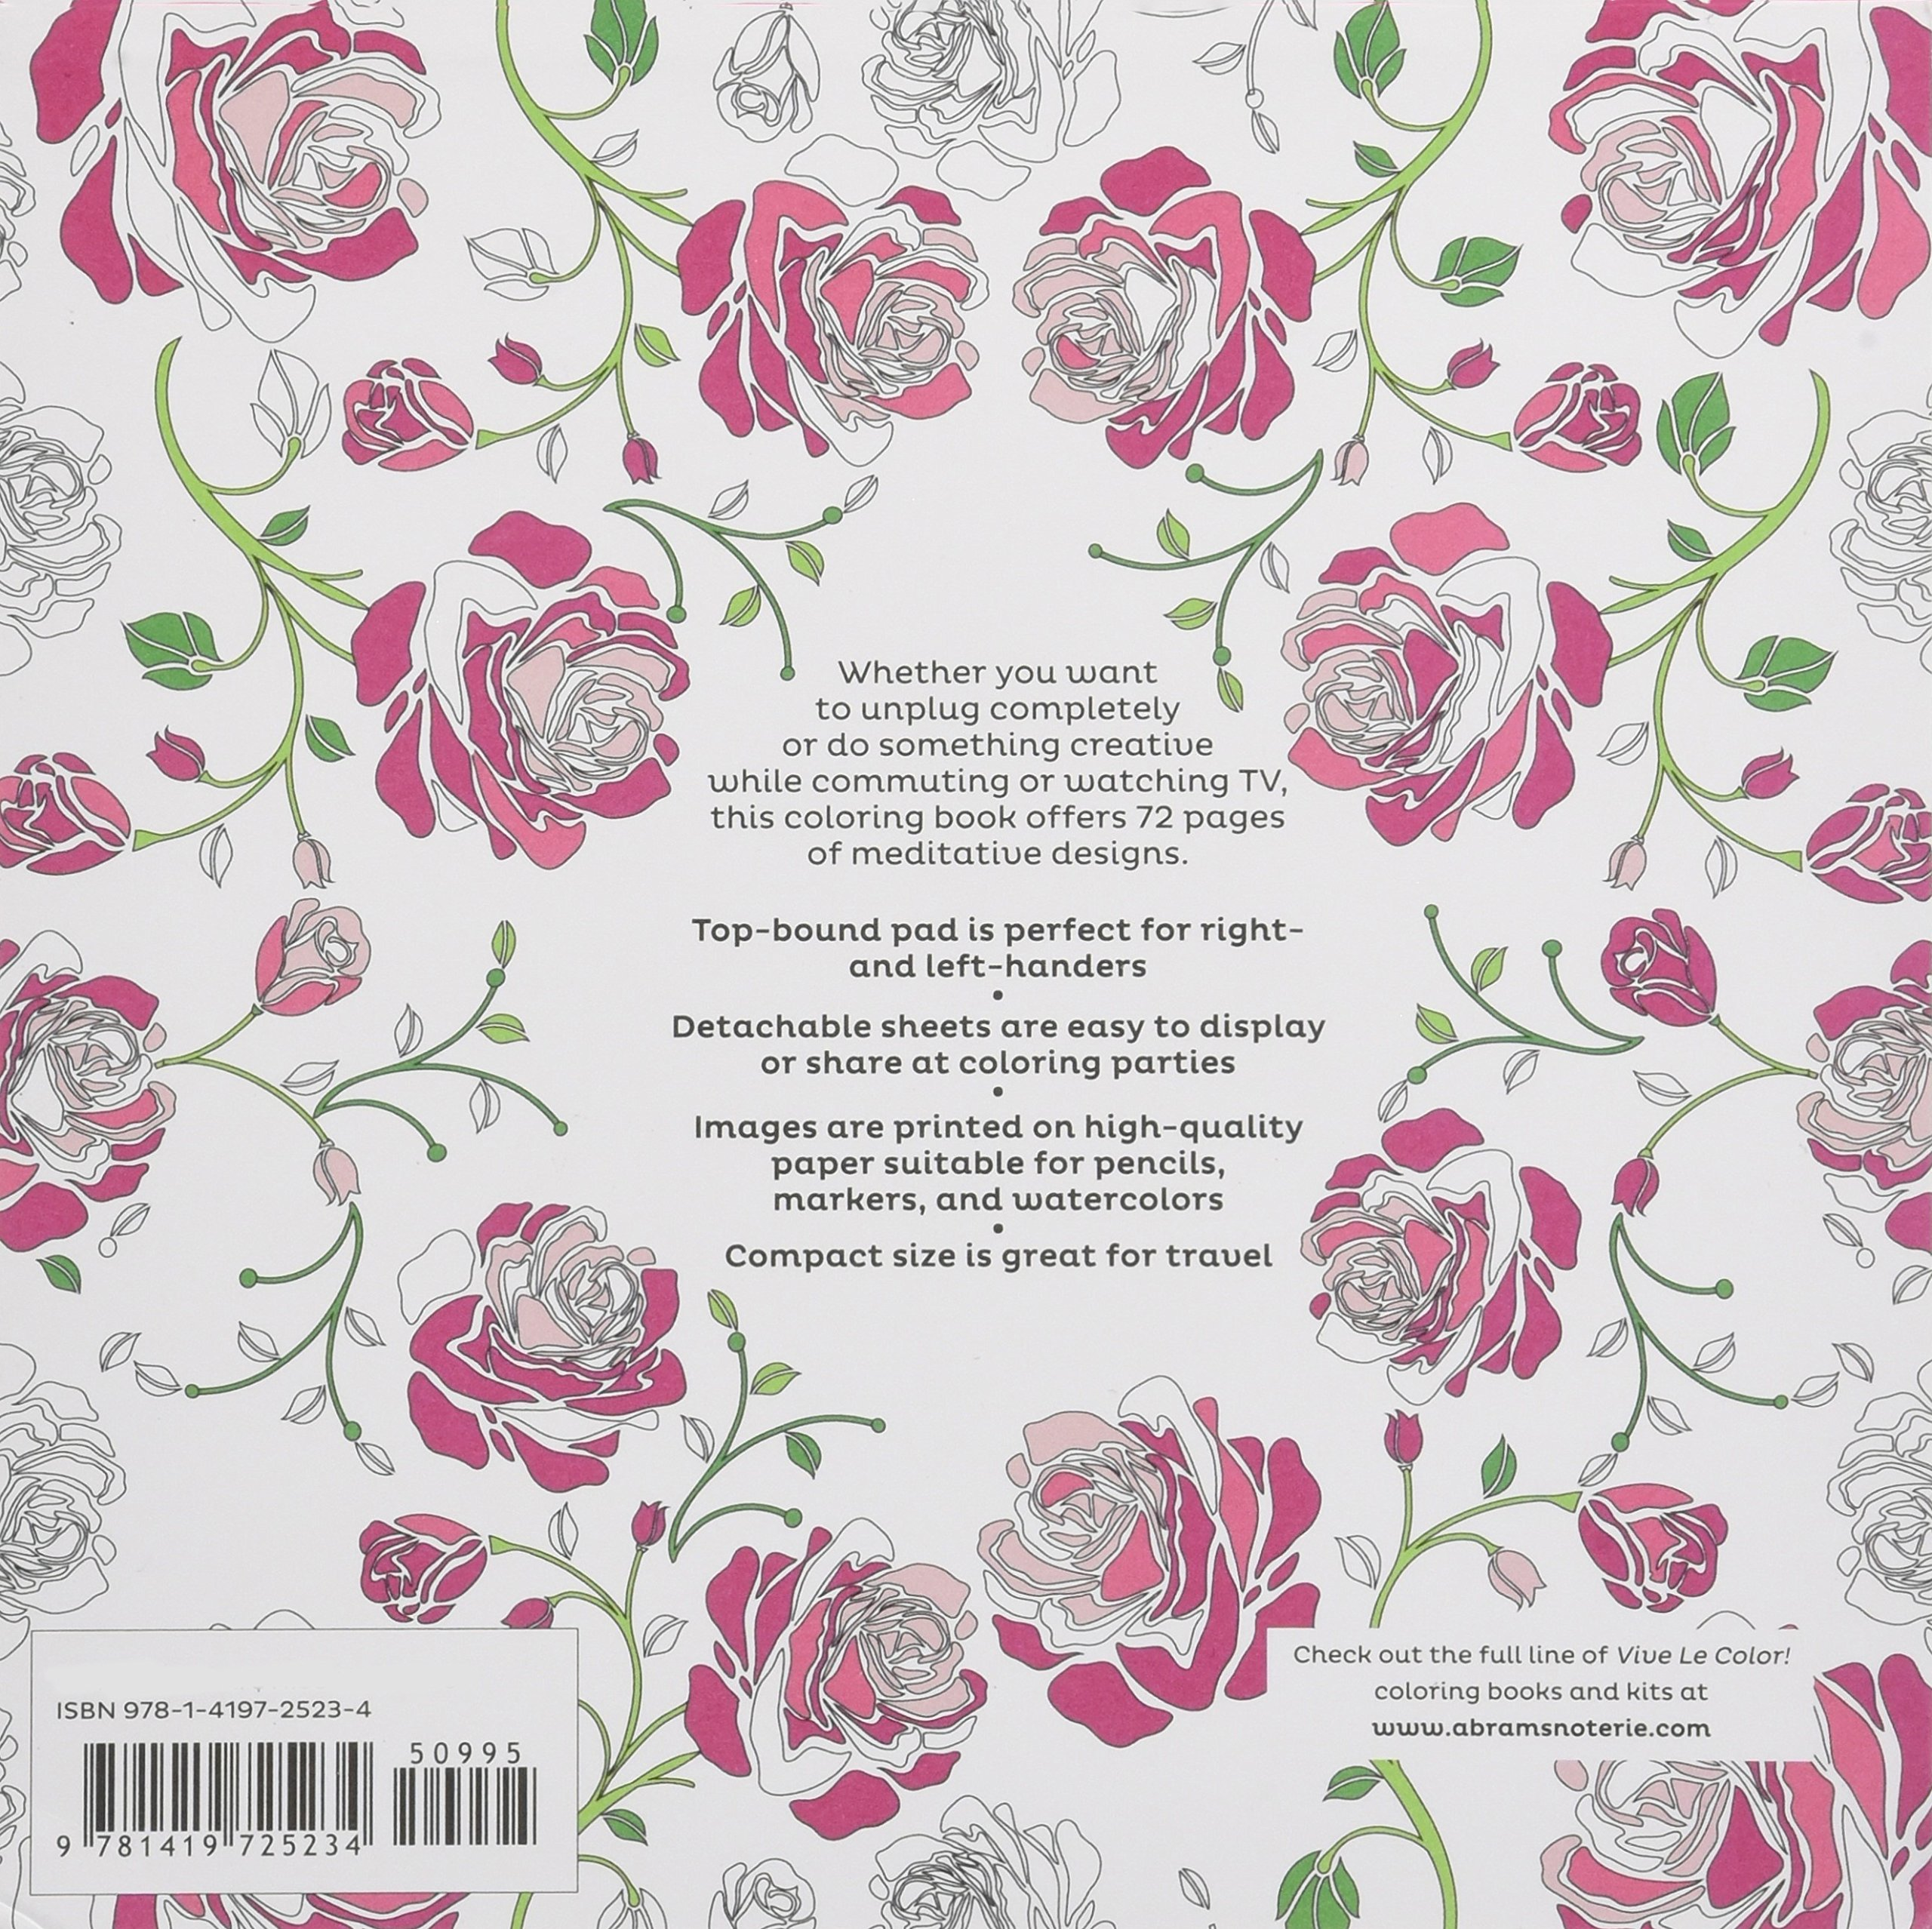 Vive Le Color Roses Adult Coloring Book In De Stress 72 Tear Out Pages Abrams Noterie 9781419725234 Amazon Books